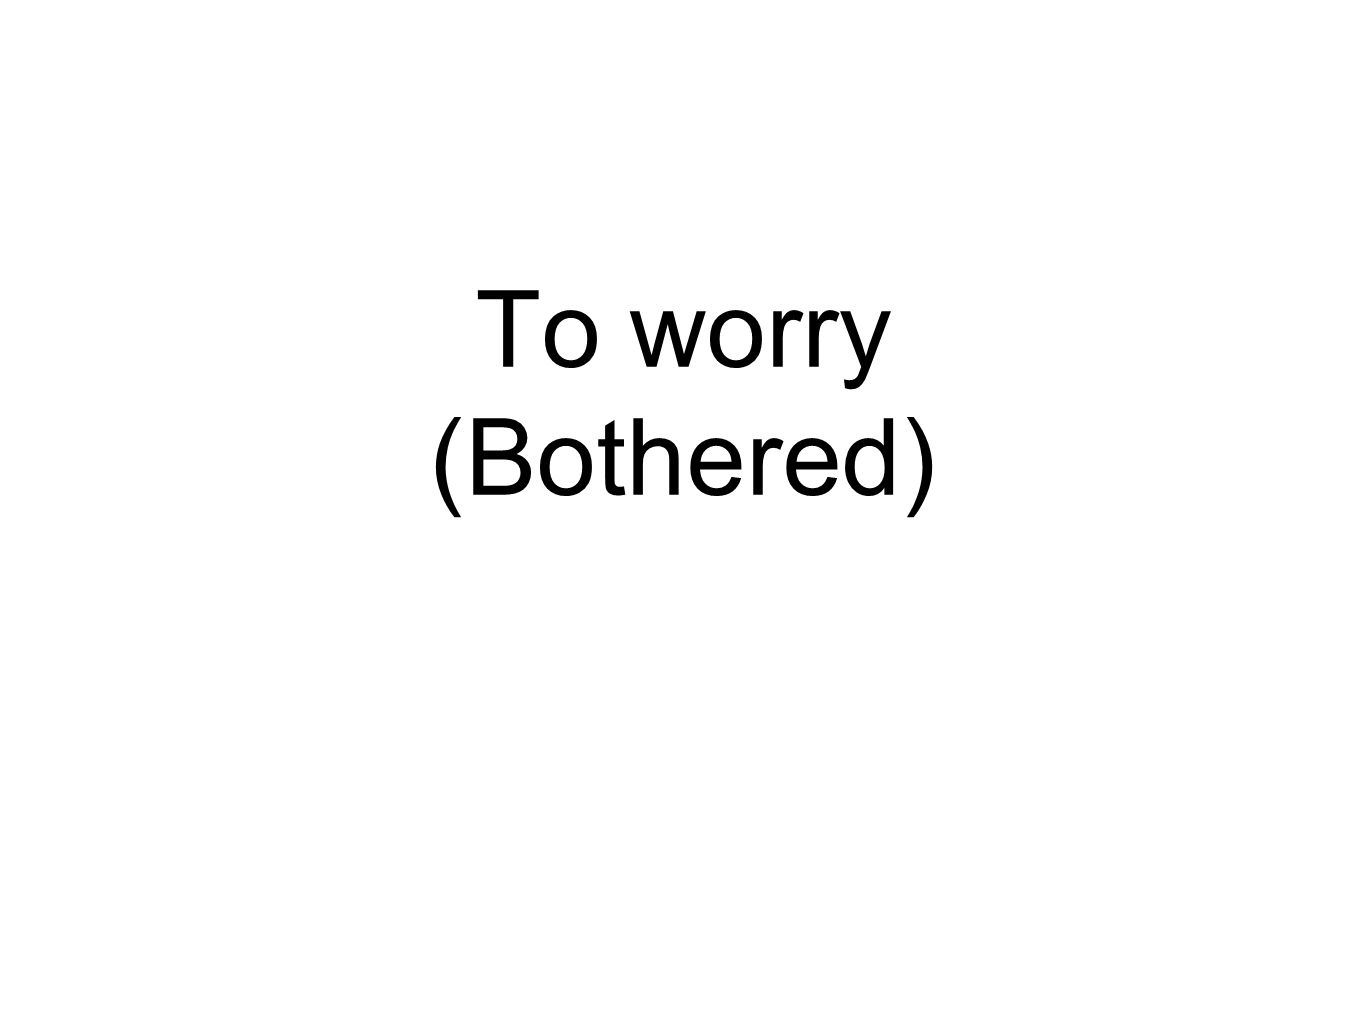 To worry (Bothered)